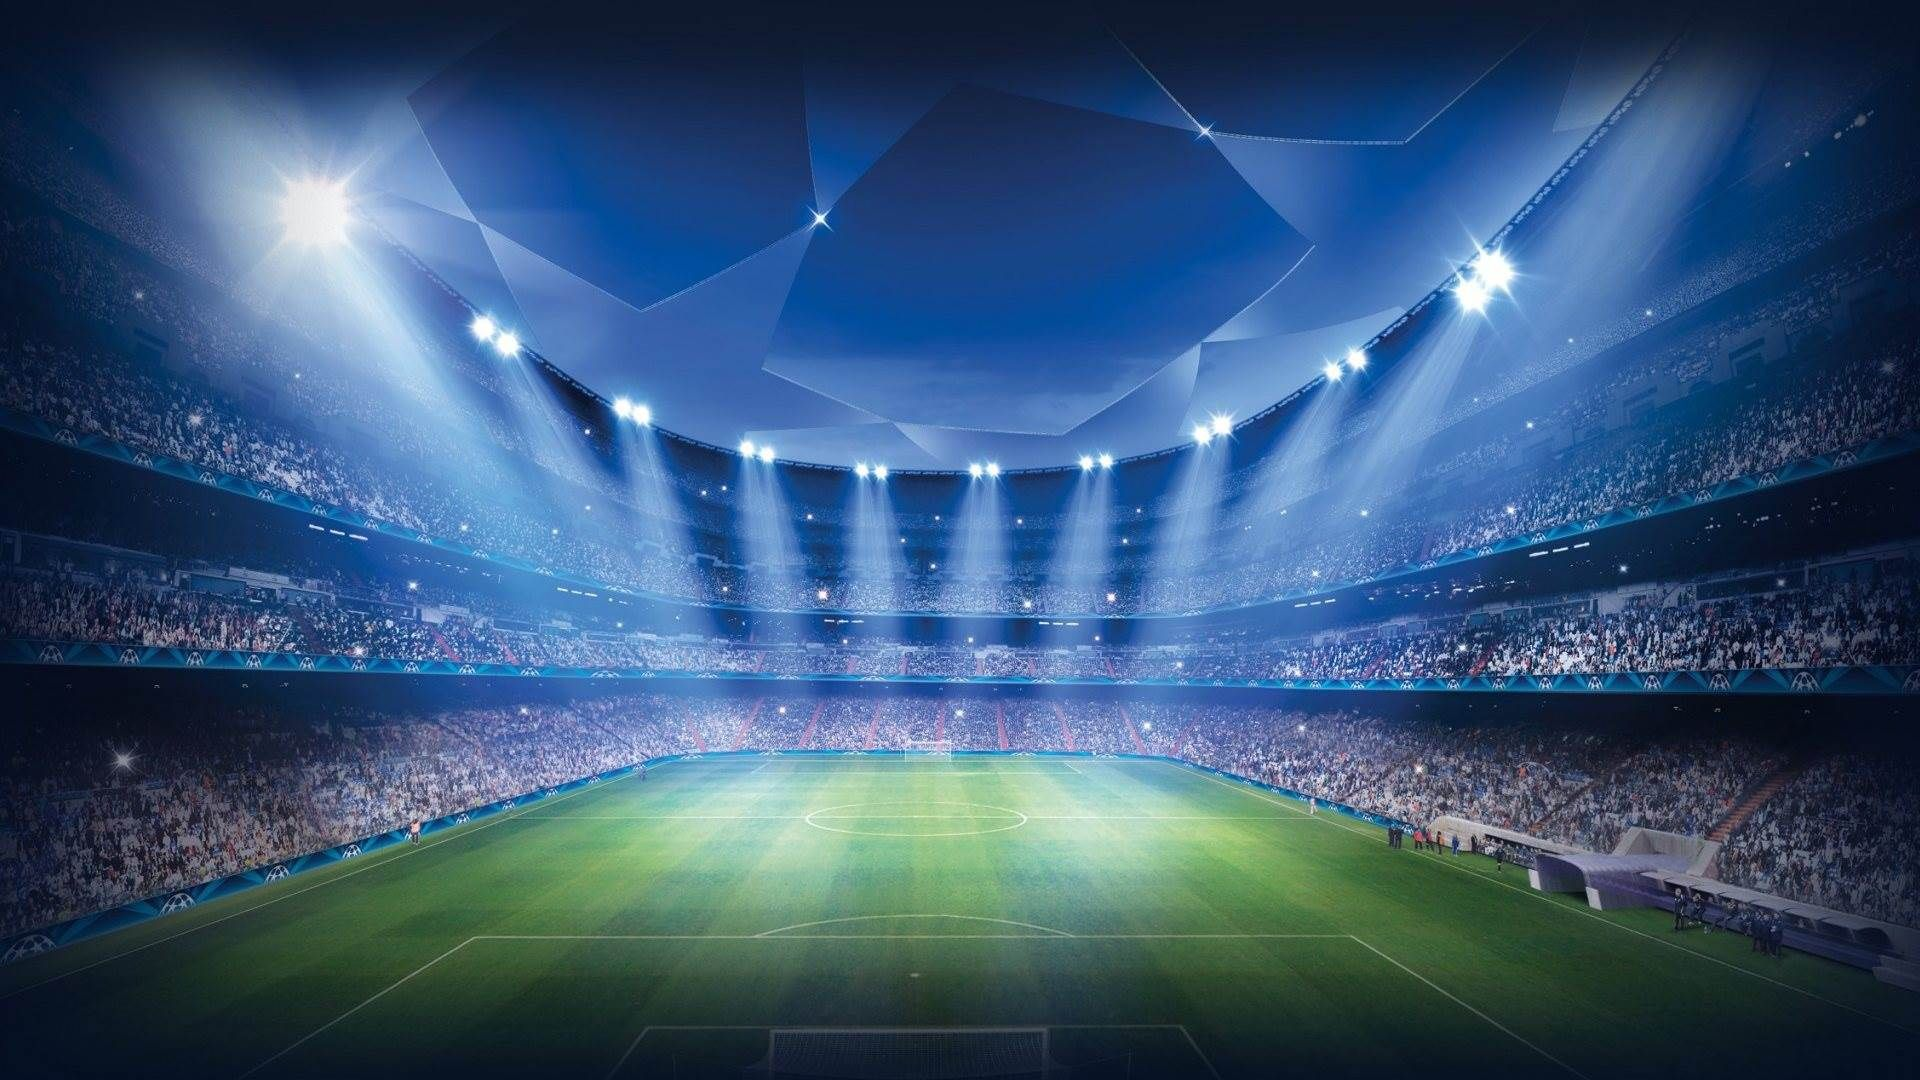 Free Download Wallpaper Football: Football Wallpapers Free Download HD New Latest Sports